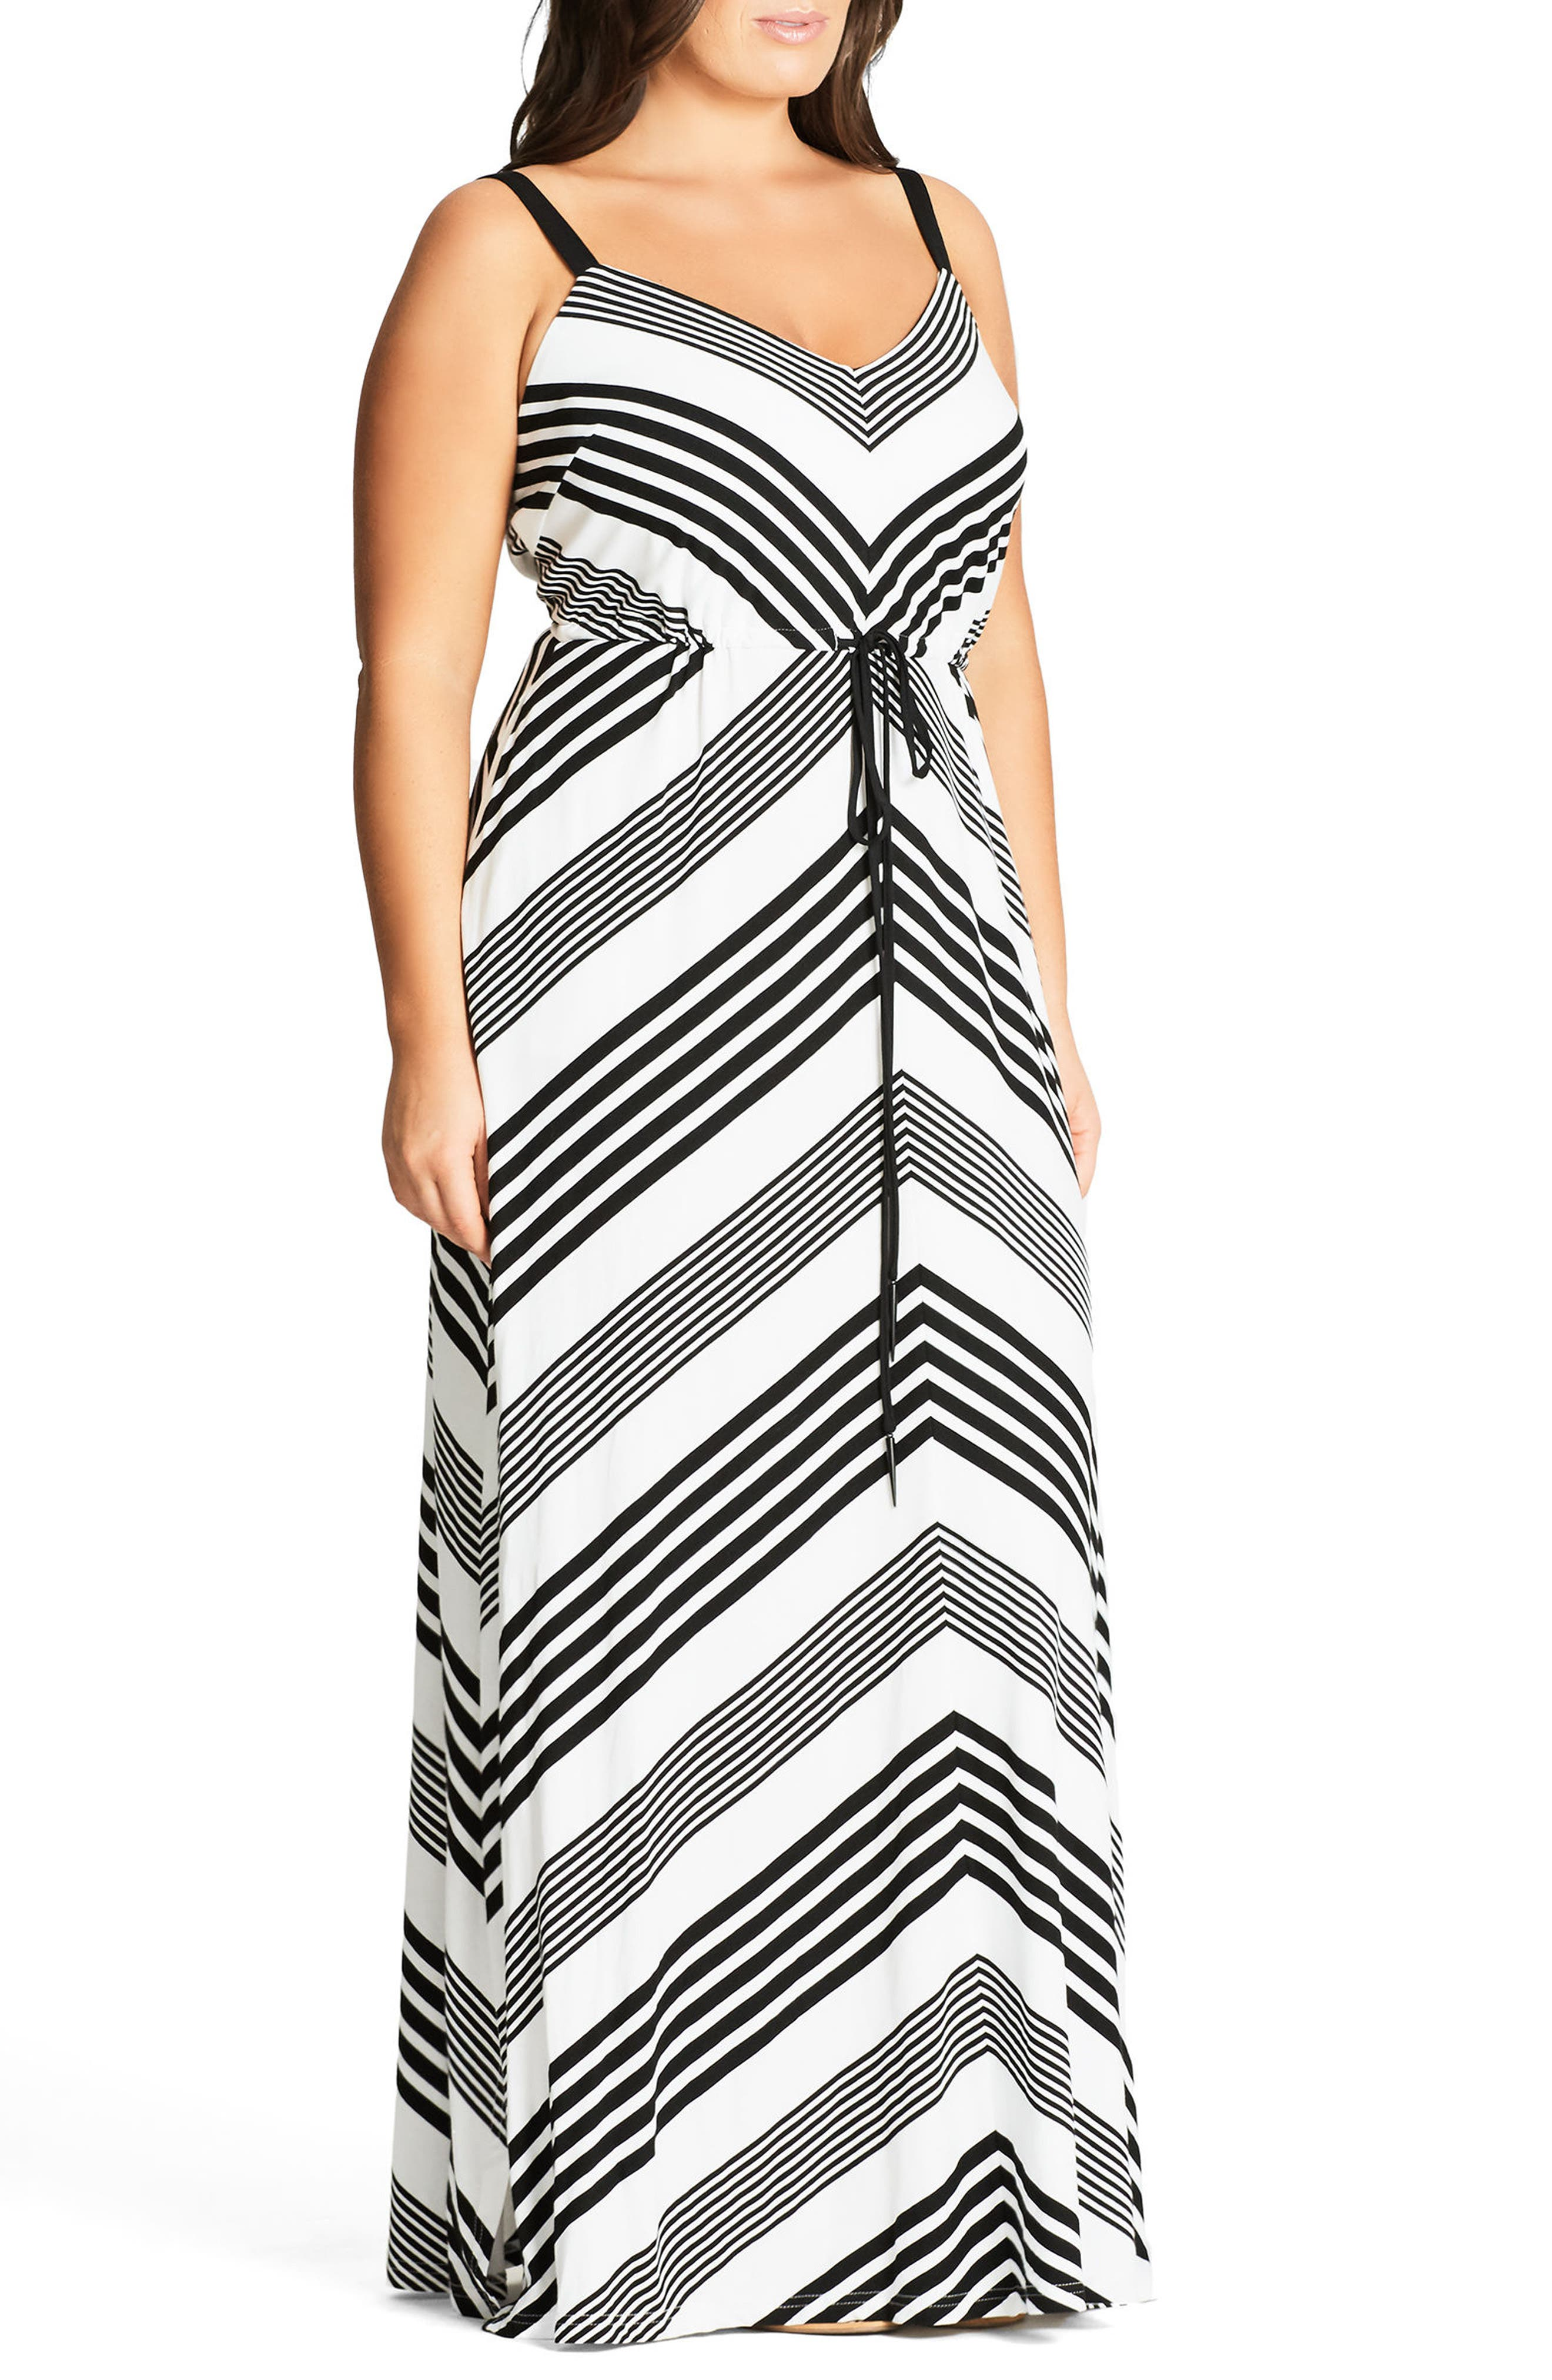 Stripe Maxi Dress,                             Alternate thumbnail 4, color,                             001